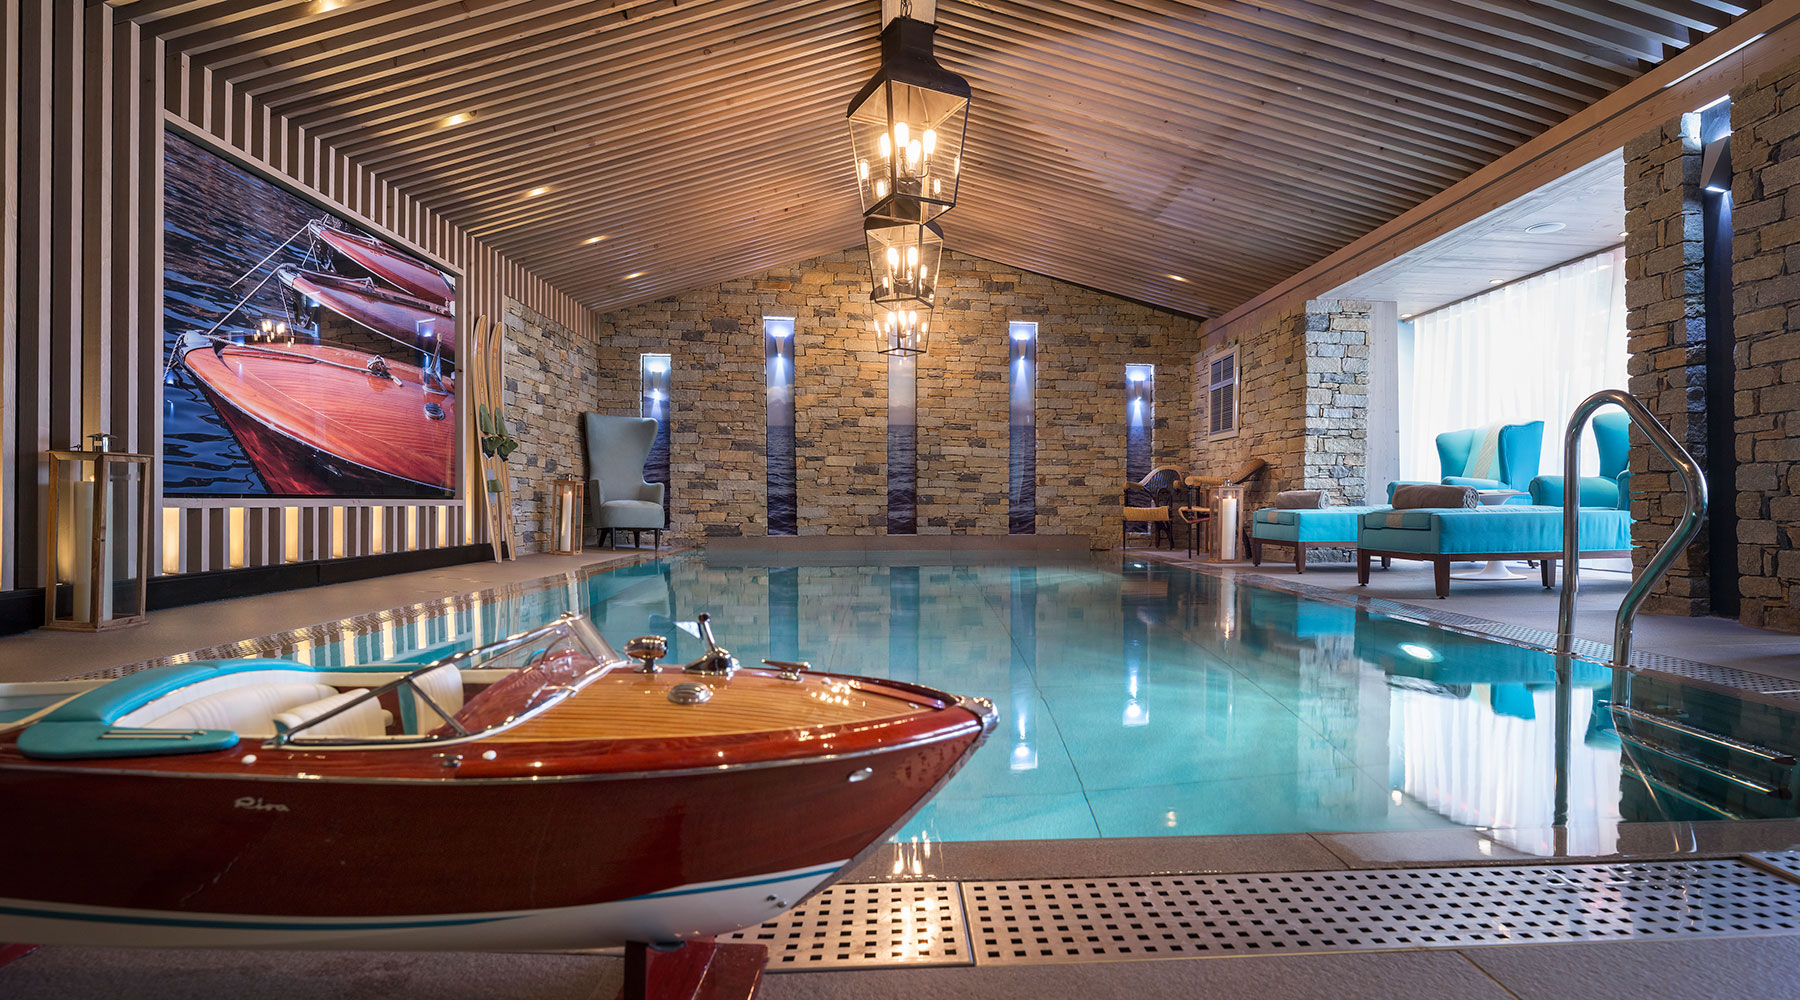 piscine-interieure-spa-hotel-luxe-courchevel-alpes